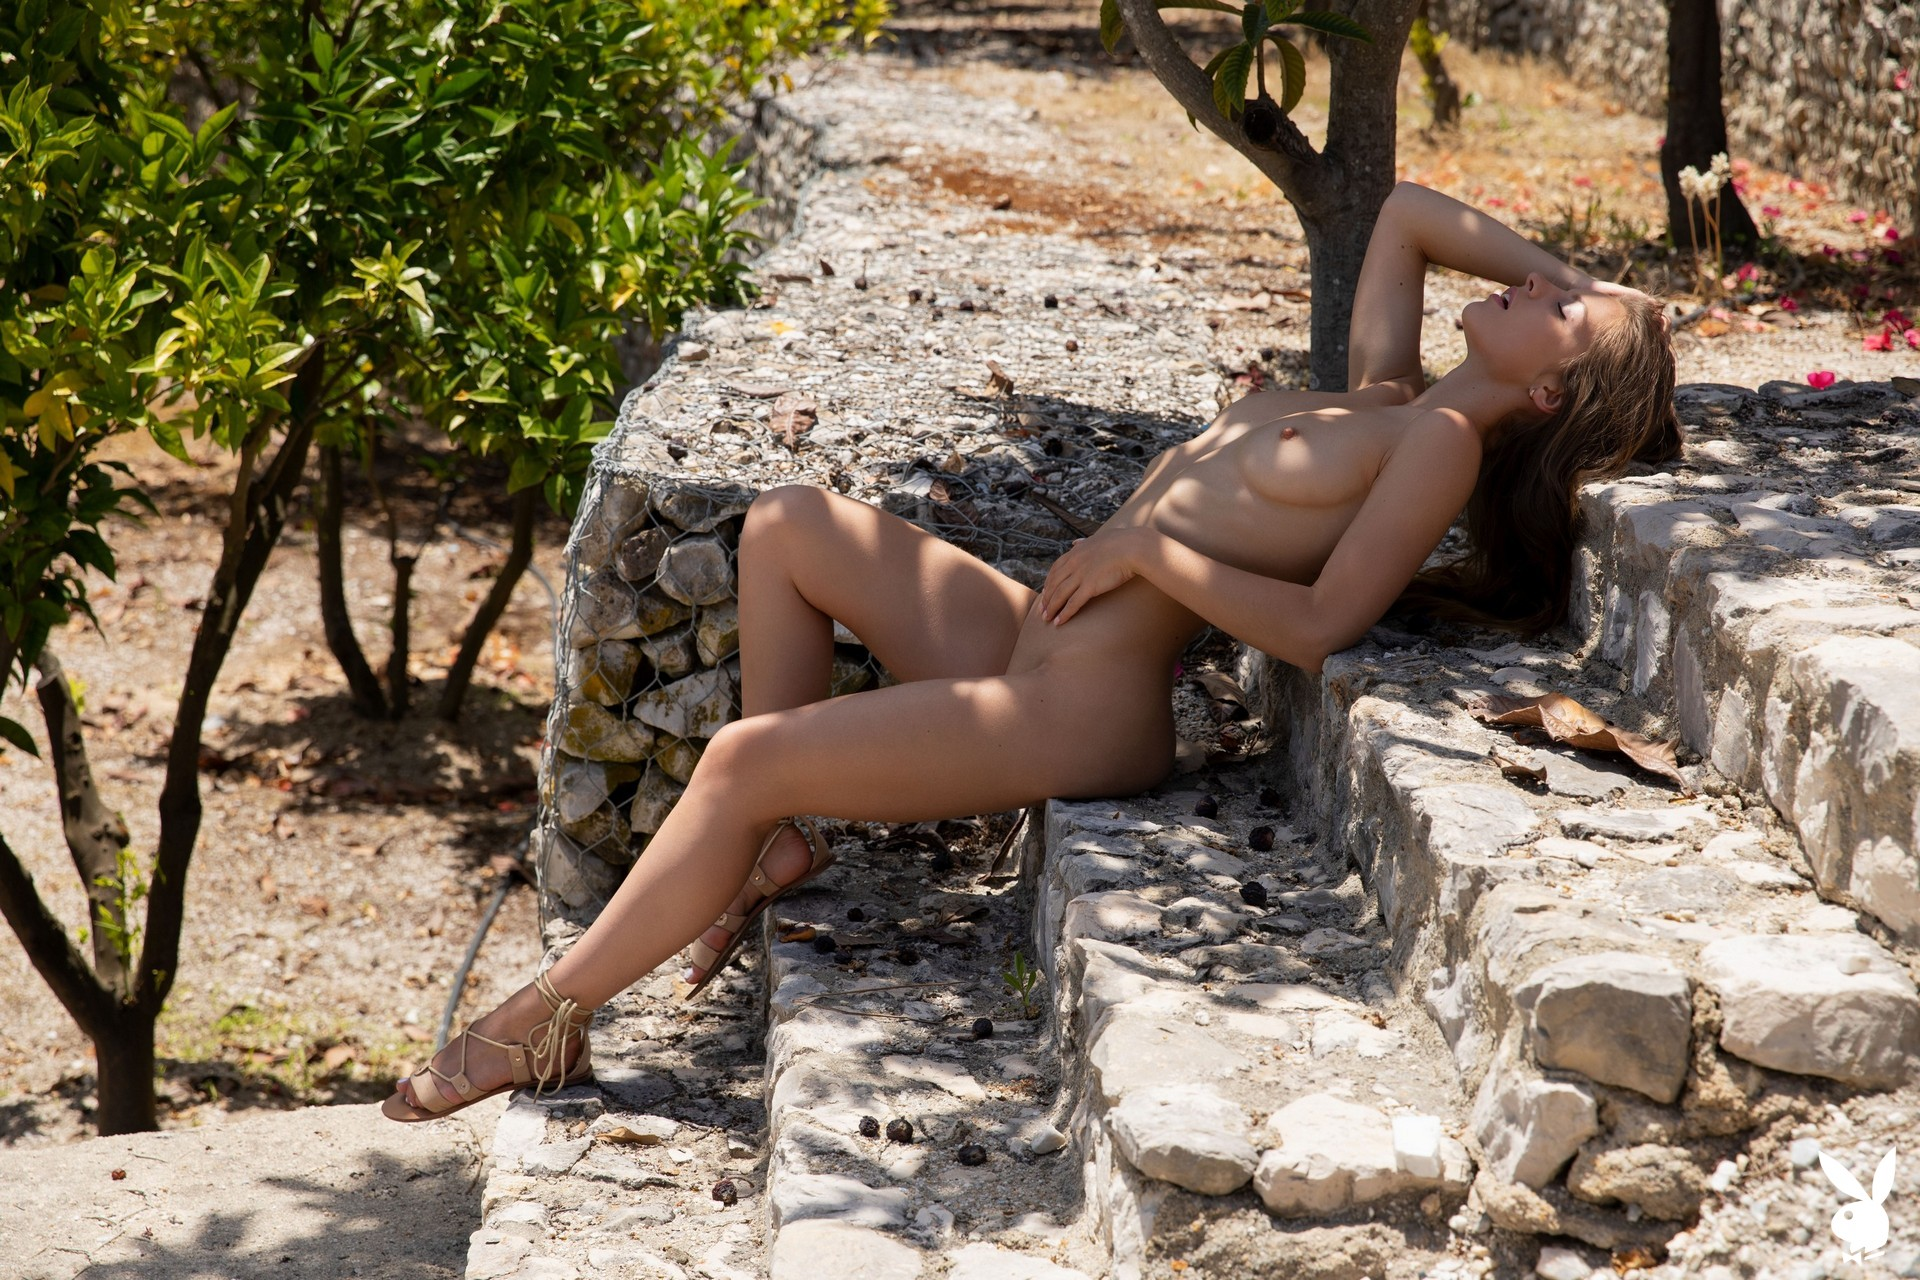 Julia abrams hot tits topless blonde erotic model taking a picnic wallpapers